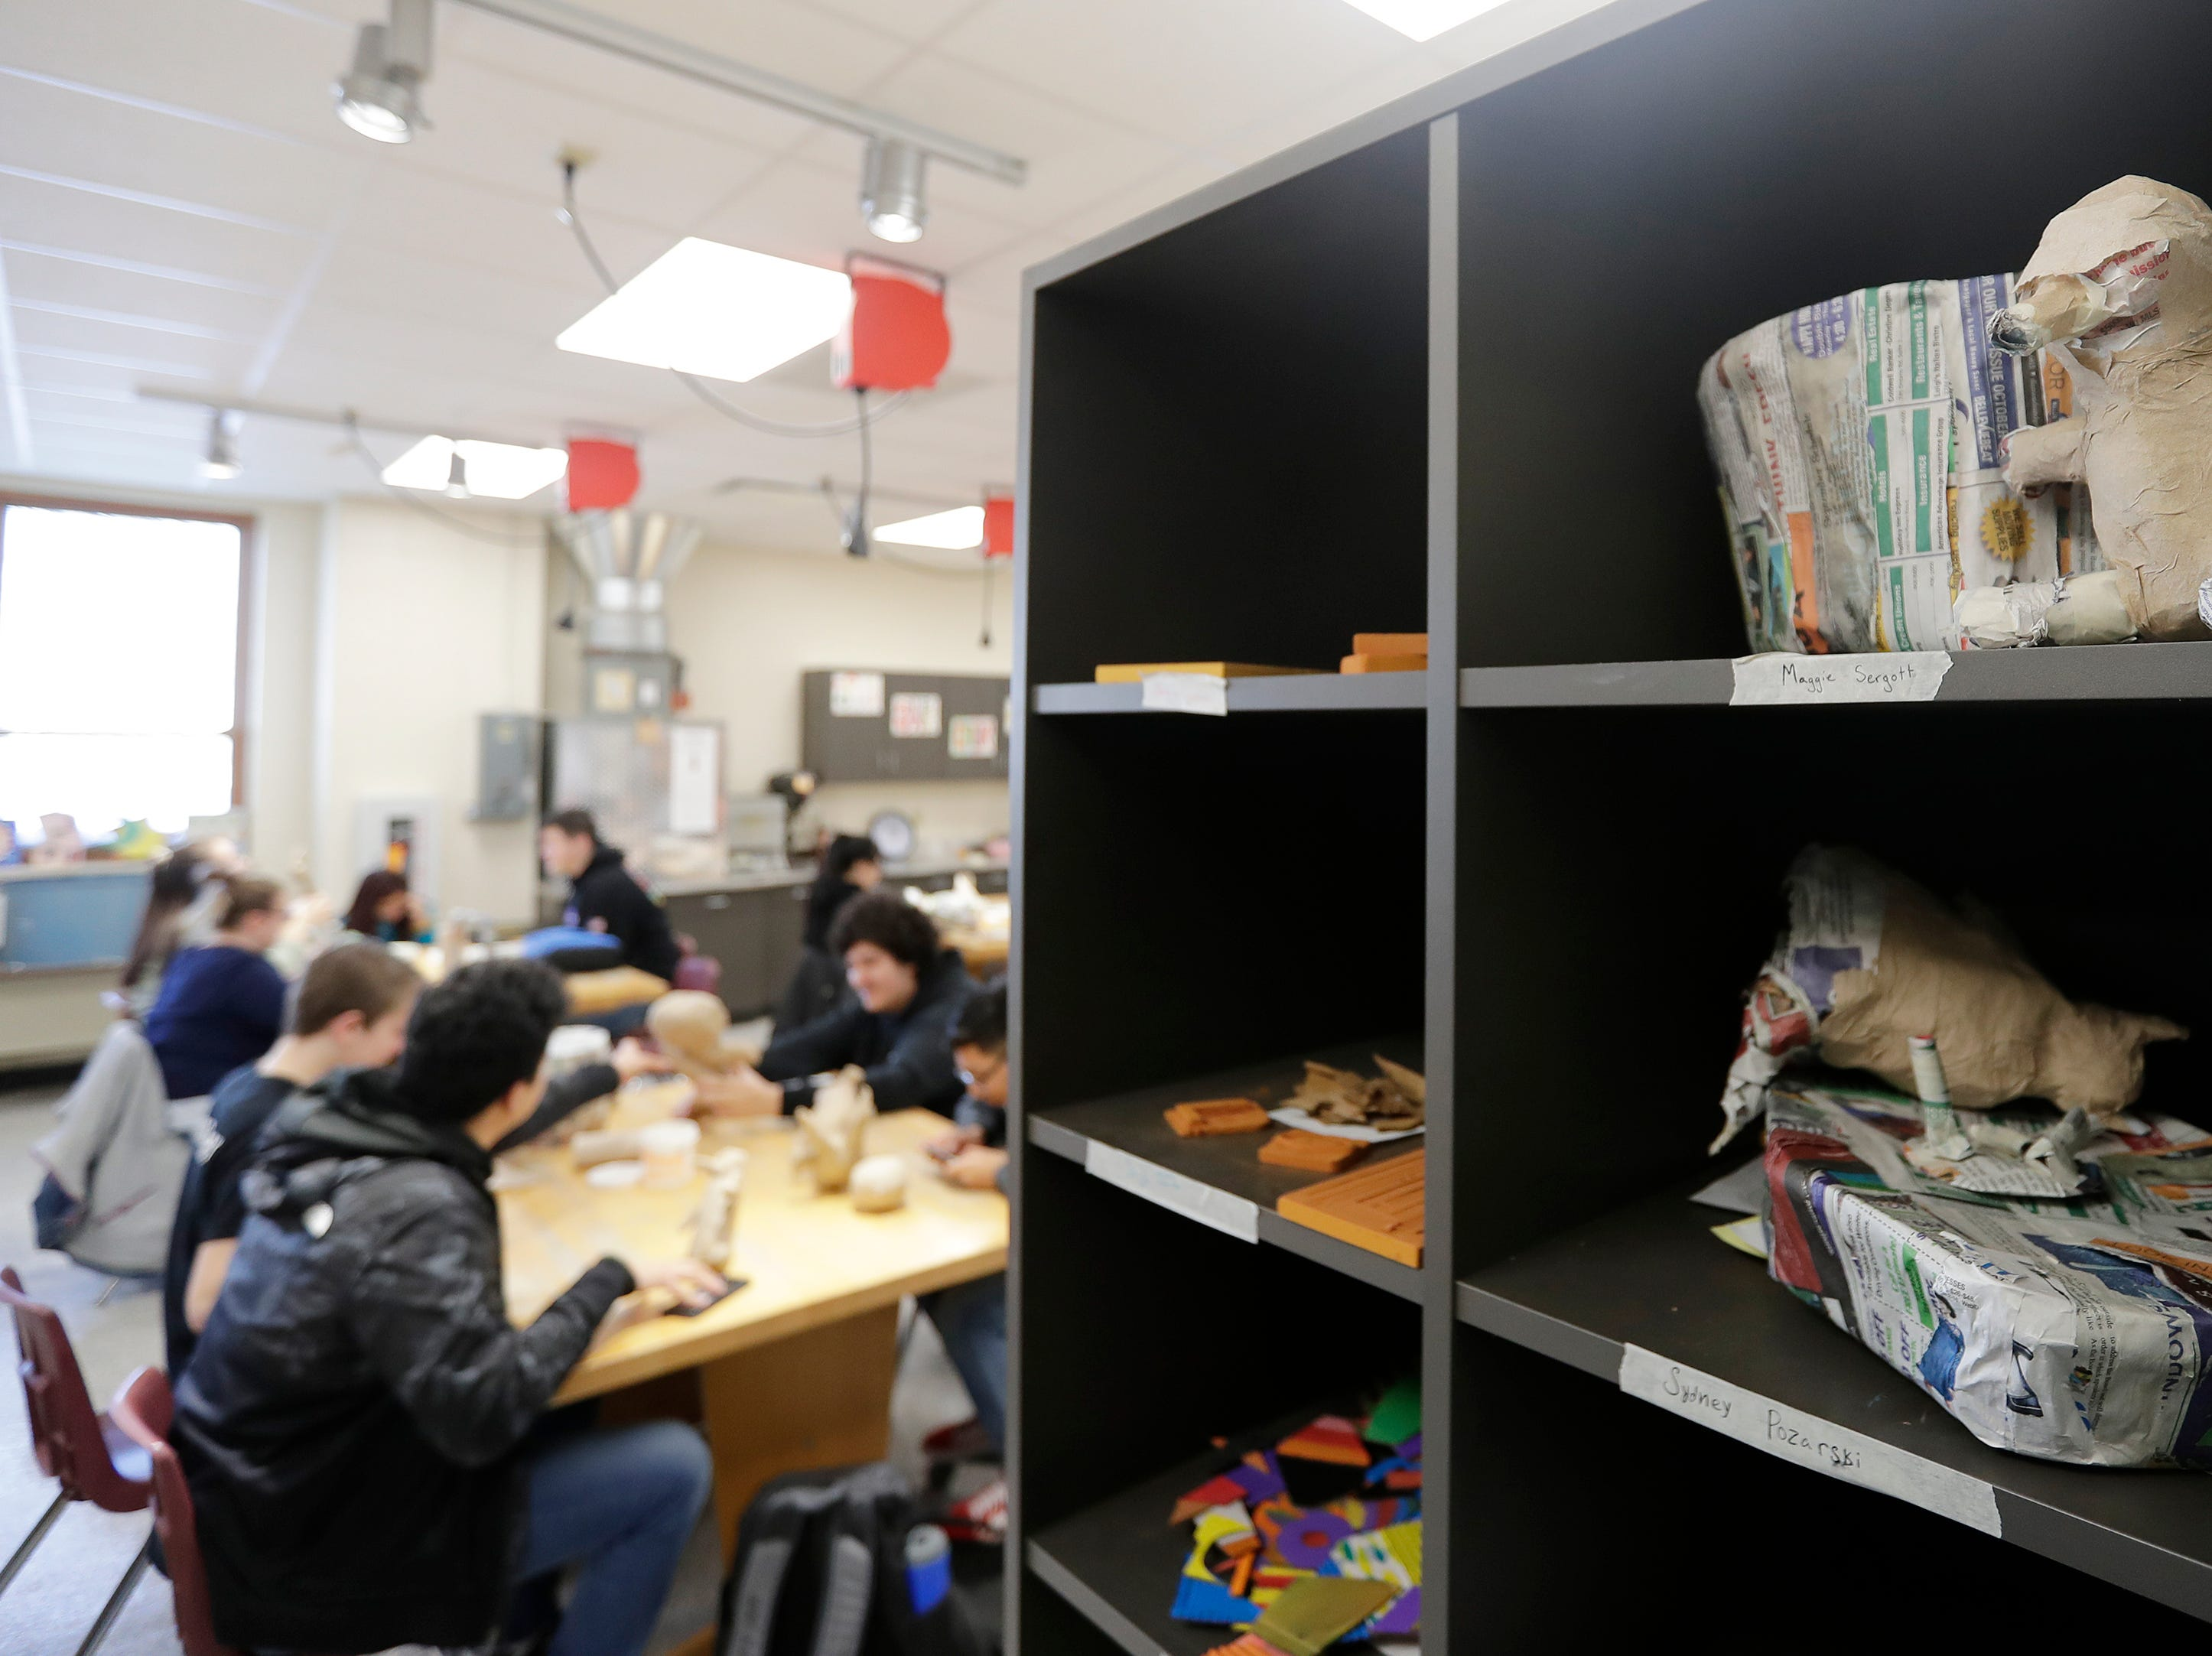 New storage space for student art projects is part of a remodeled art classroom at East High School in Green Bay.